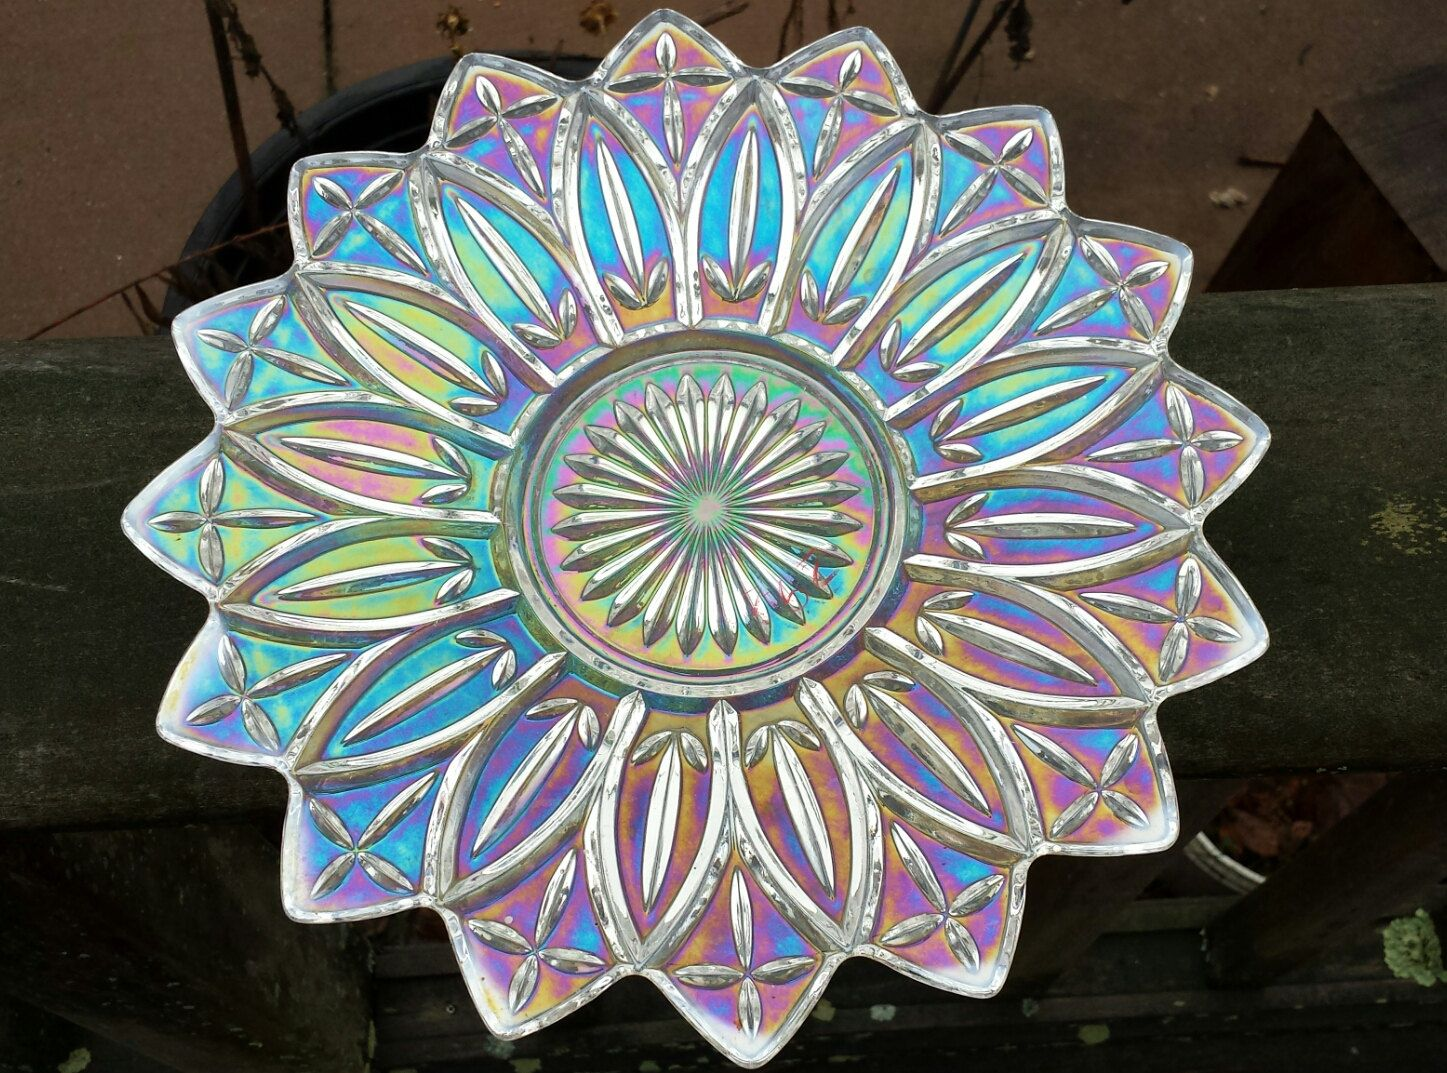 Carnival glass clear iridescent glass serving bowl in the petal carnival glass clear iridescent glass serving bowl in the petal pattern by federal glass 1960s d077 3 reviewsmspy